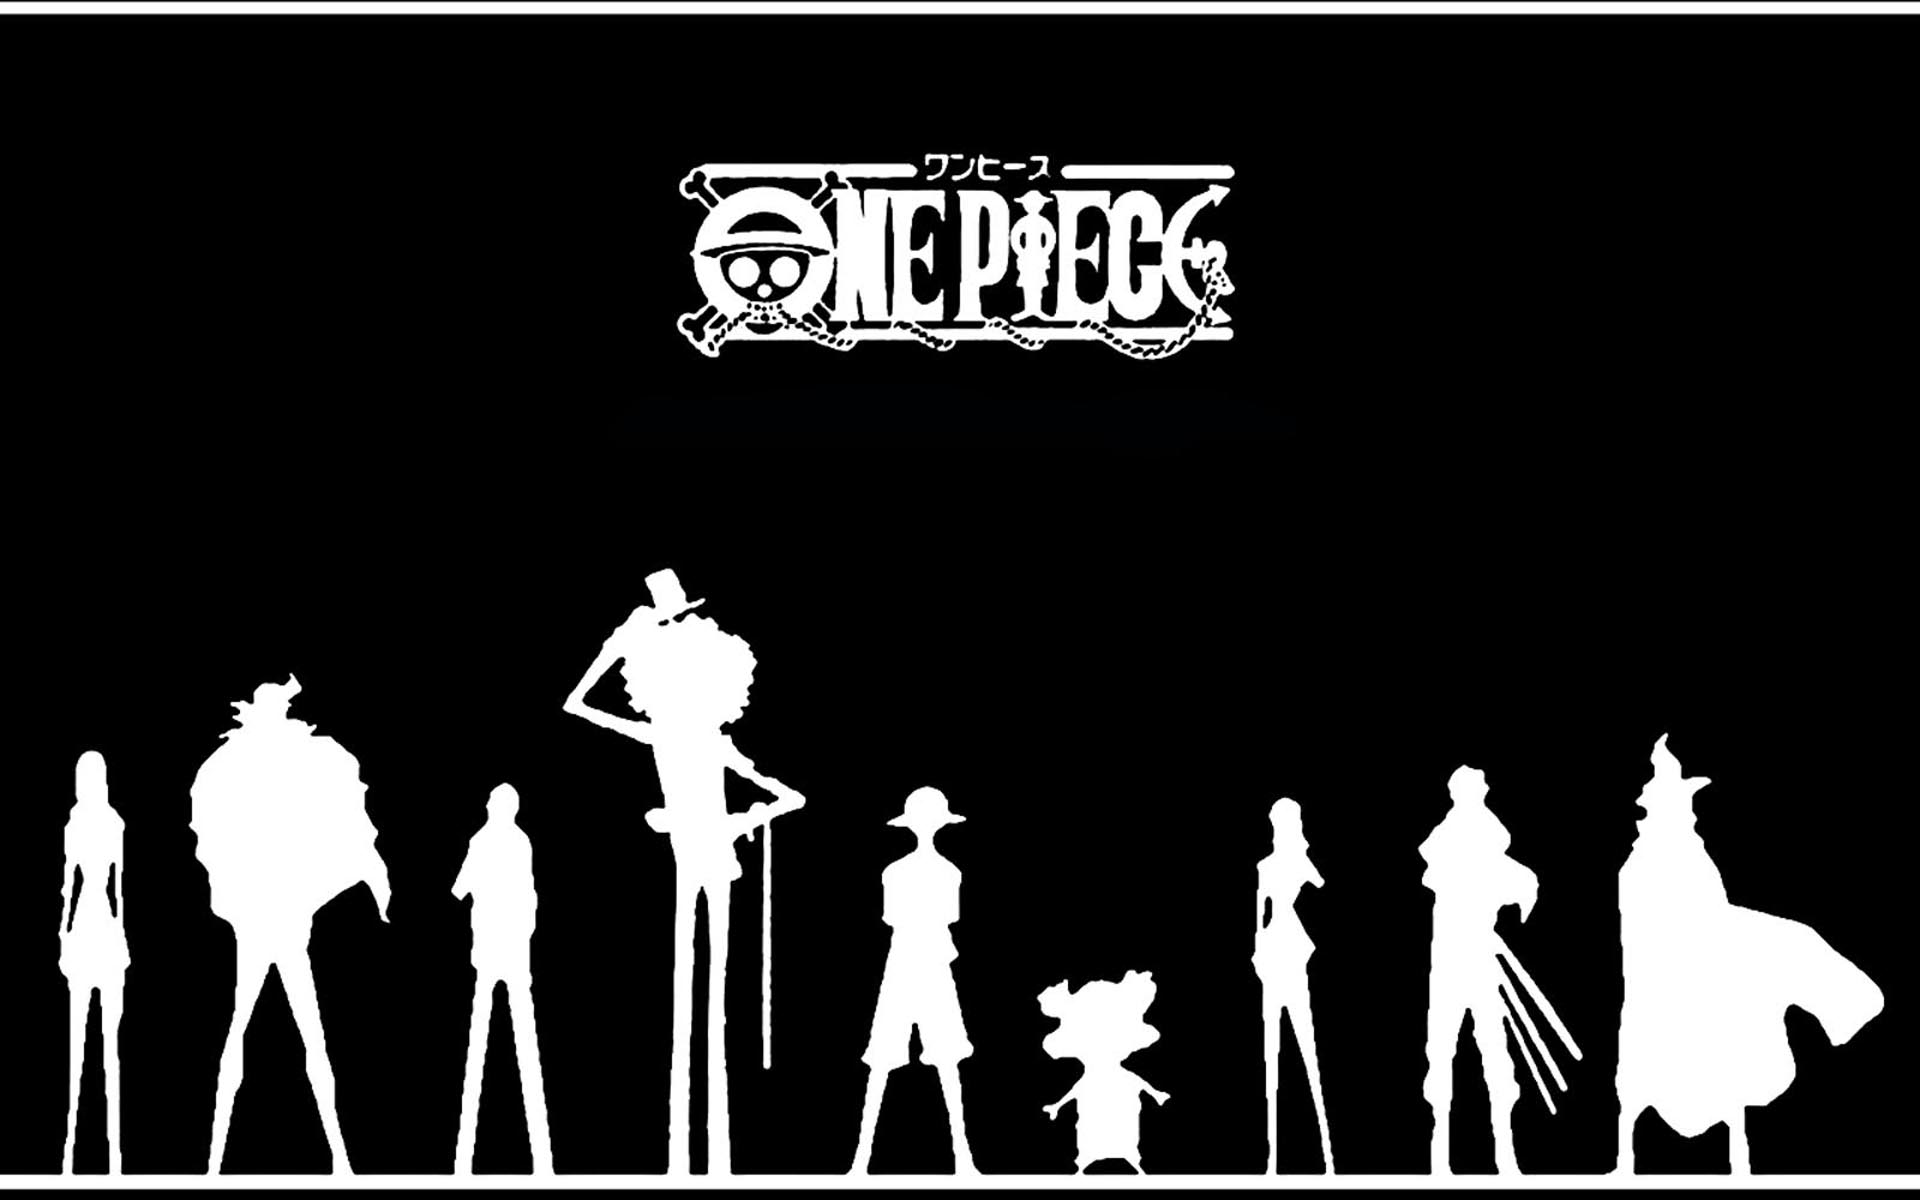 One Piece Wallpapers Hd wallpapers